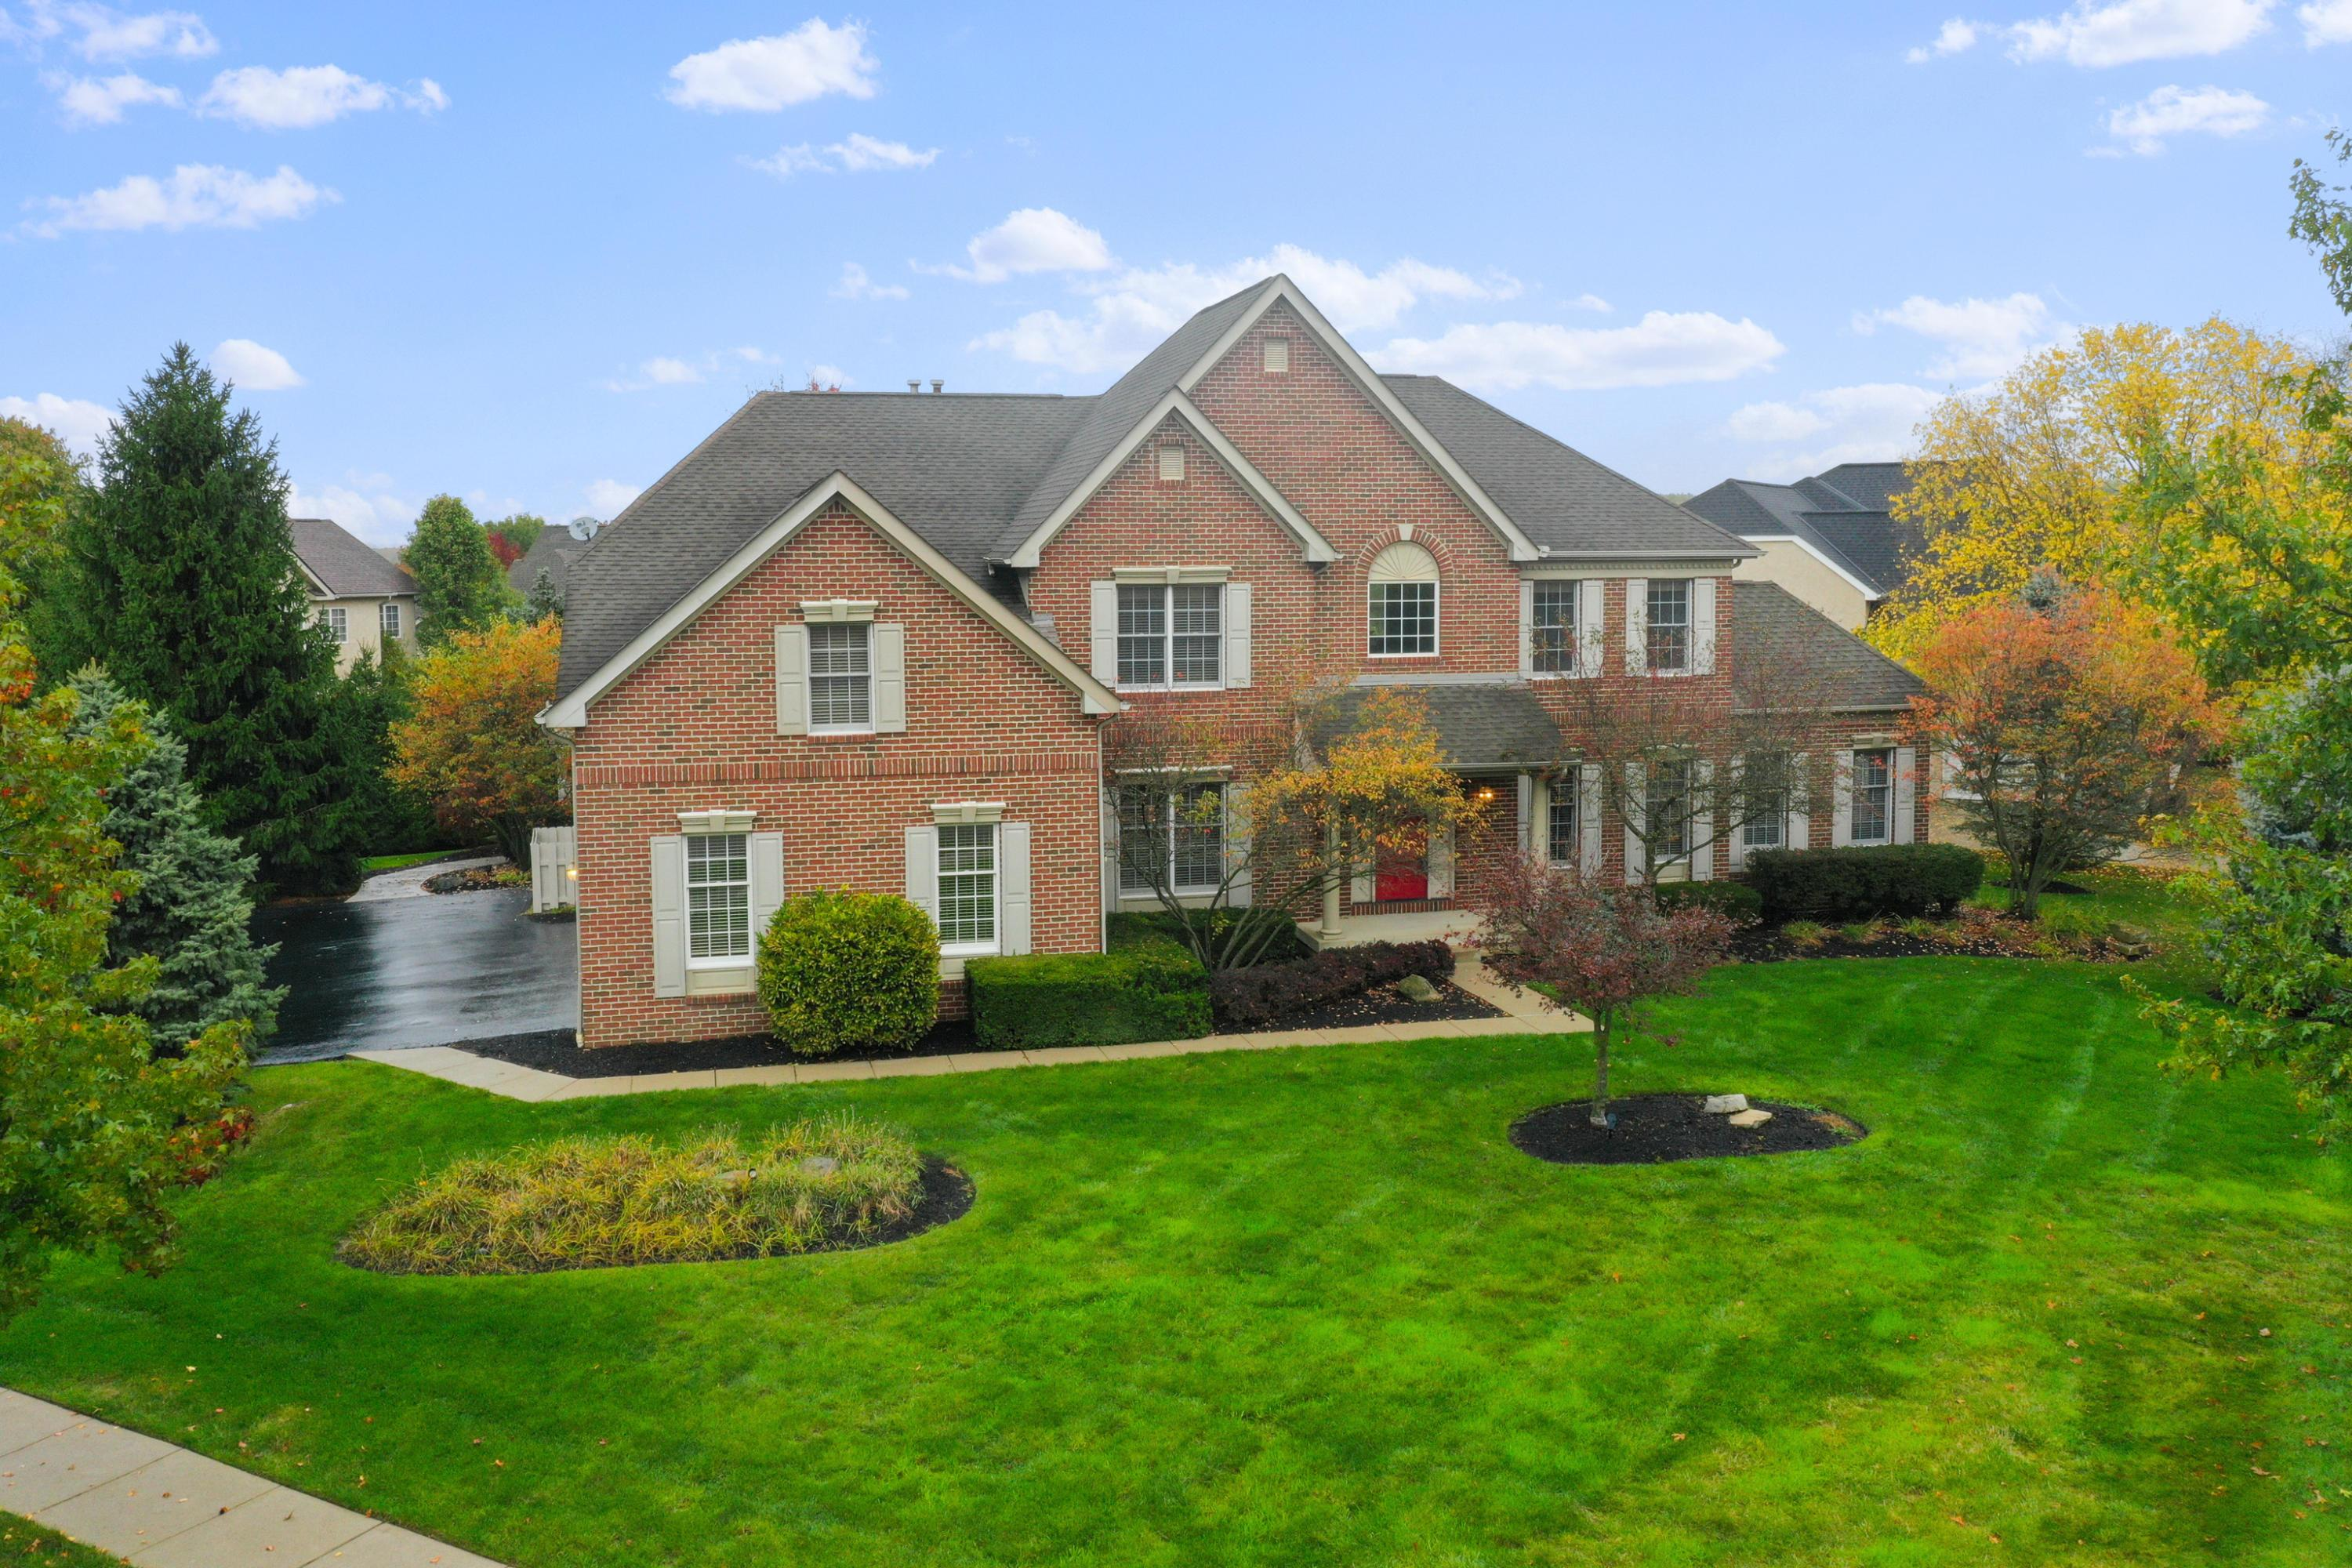 Photo of 8202 Timber Mist Court, Dublin, OH 43017